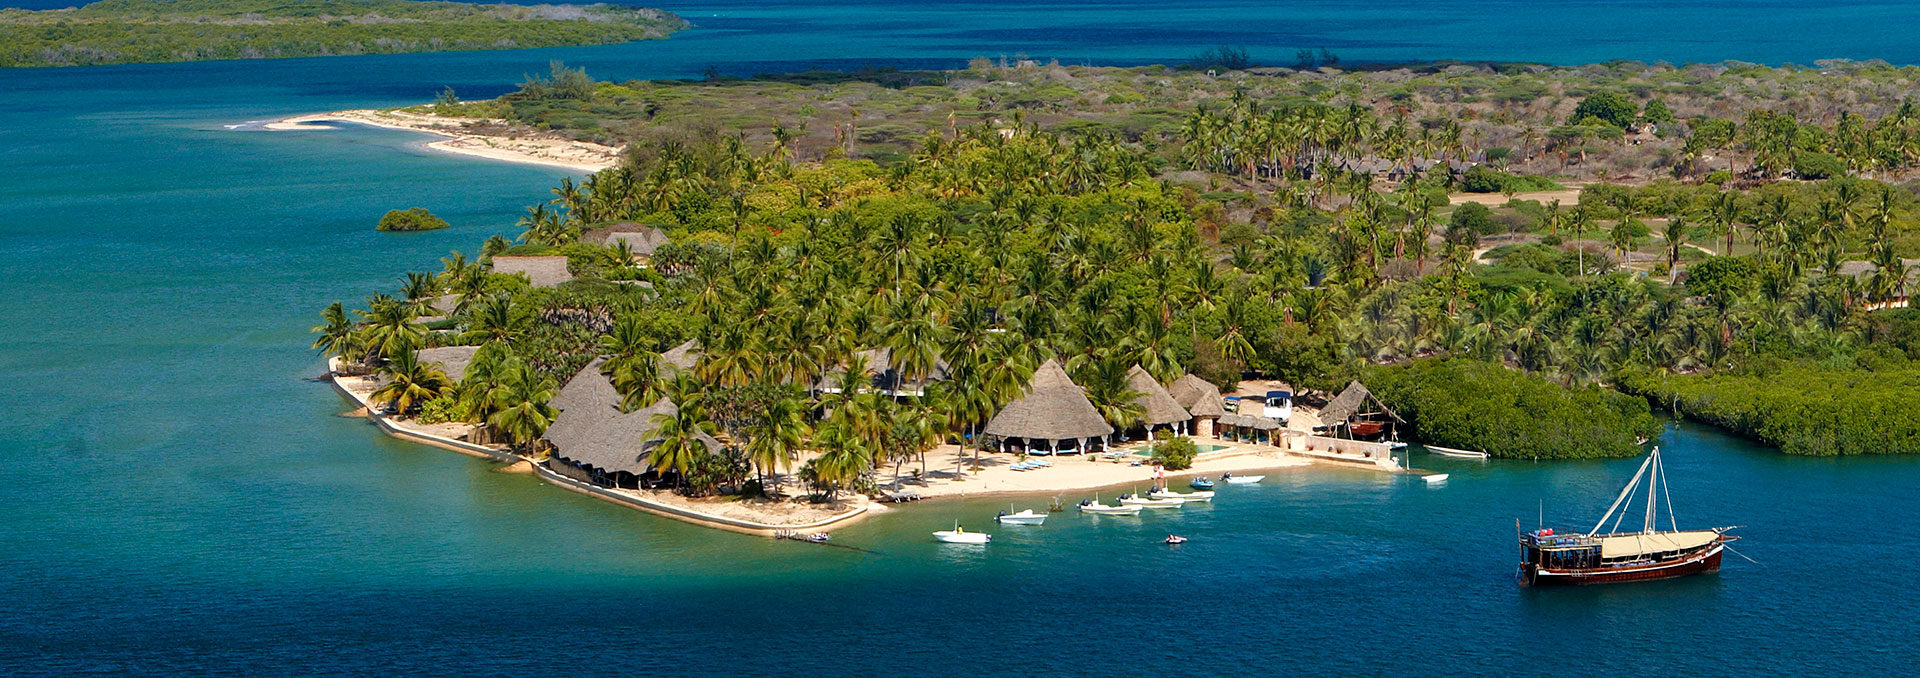 Lamu Island Holidays  Let Us Book Your Beach Holiday in Kenya